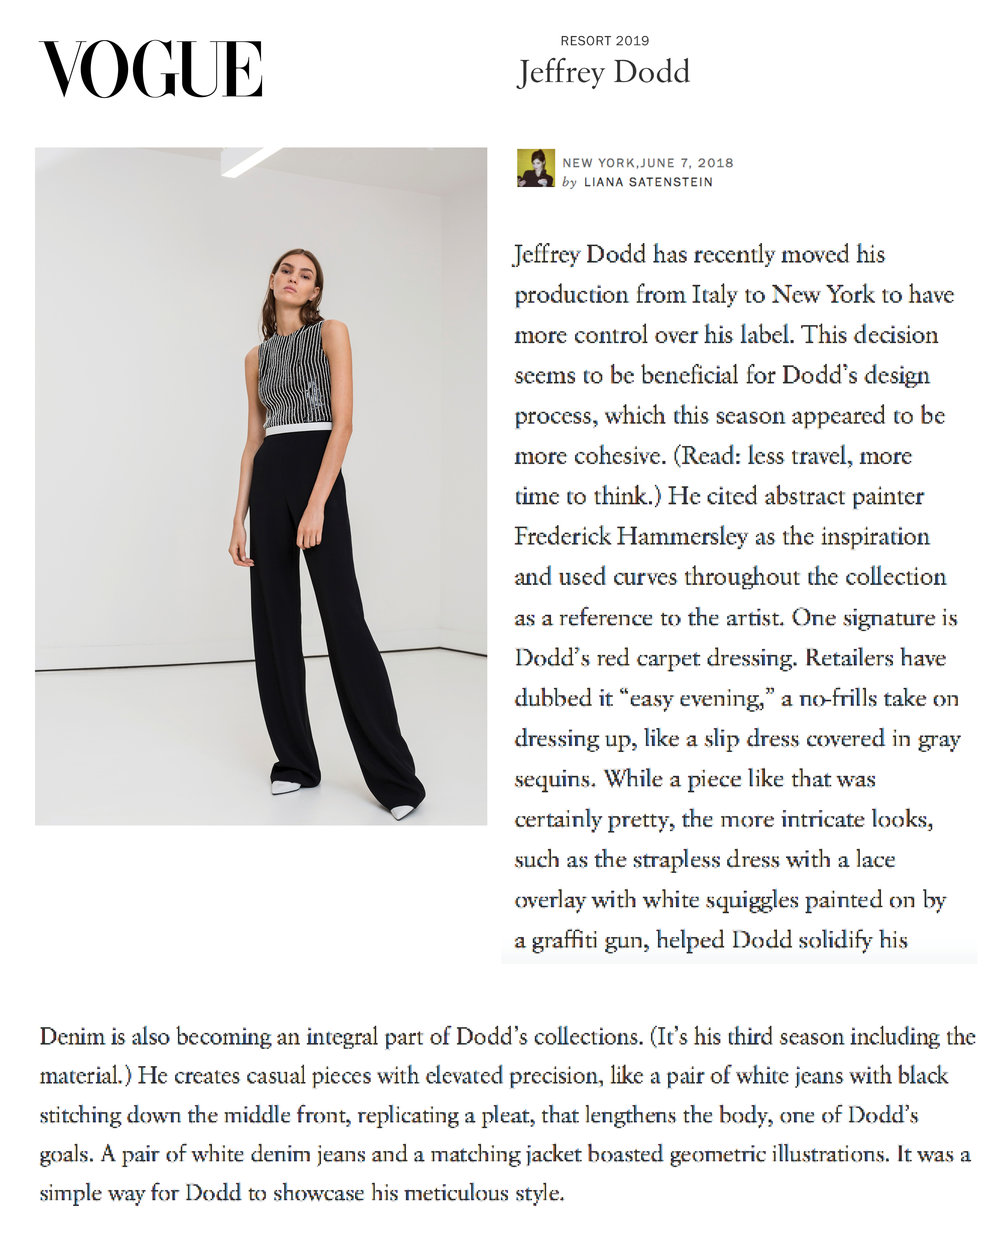 VOGUE REVIEW | RESORT 2019